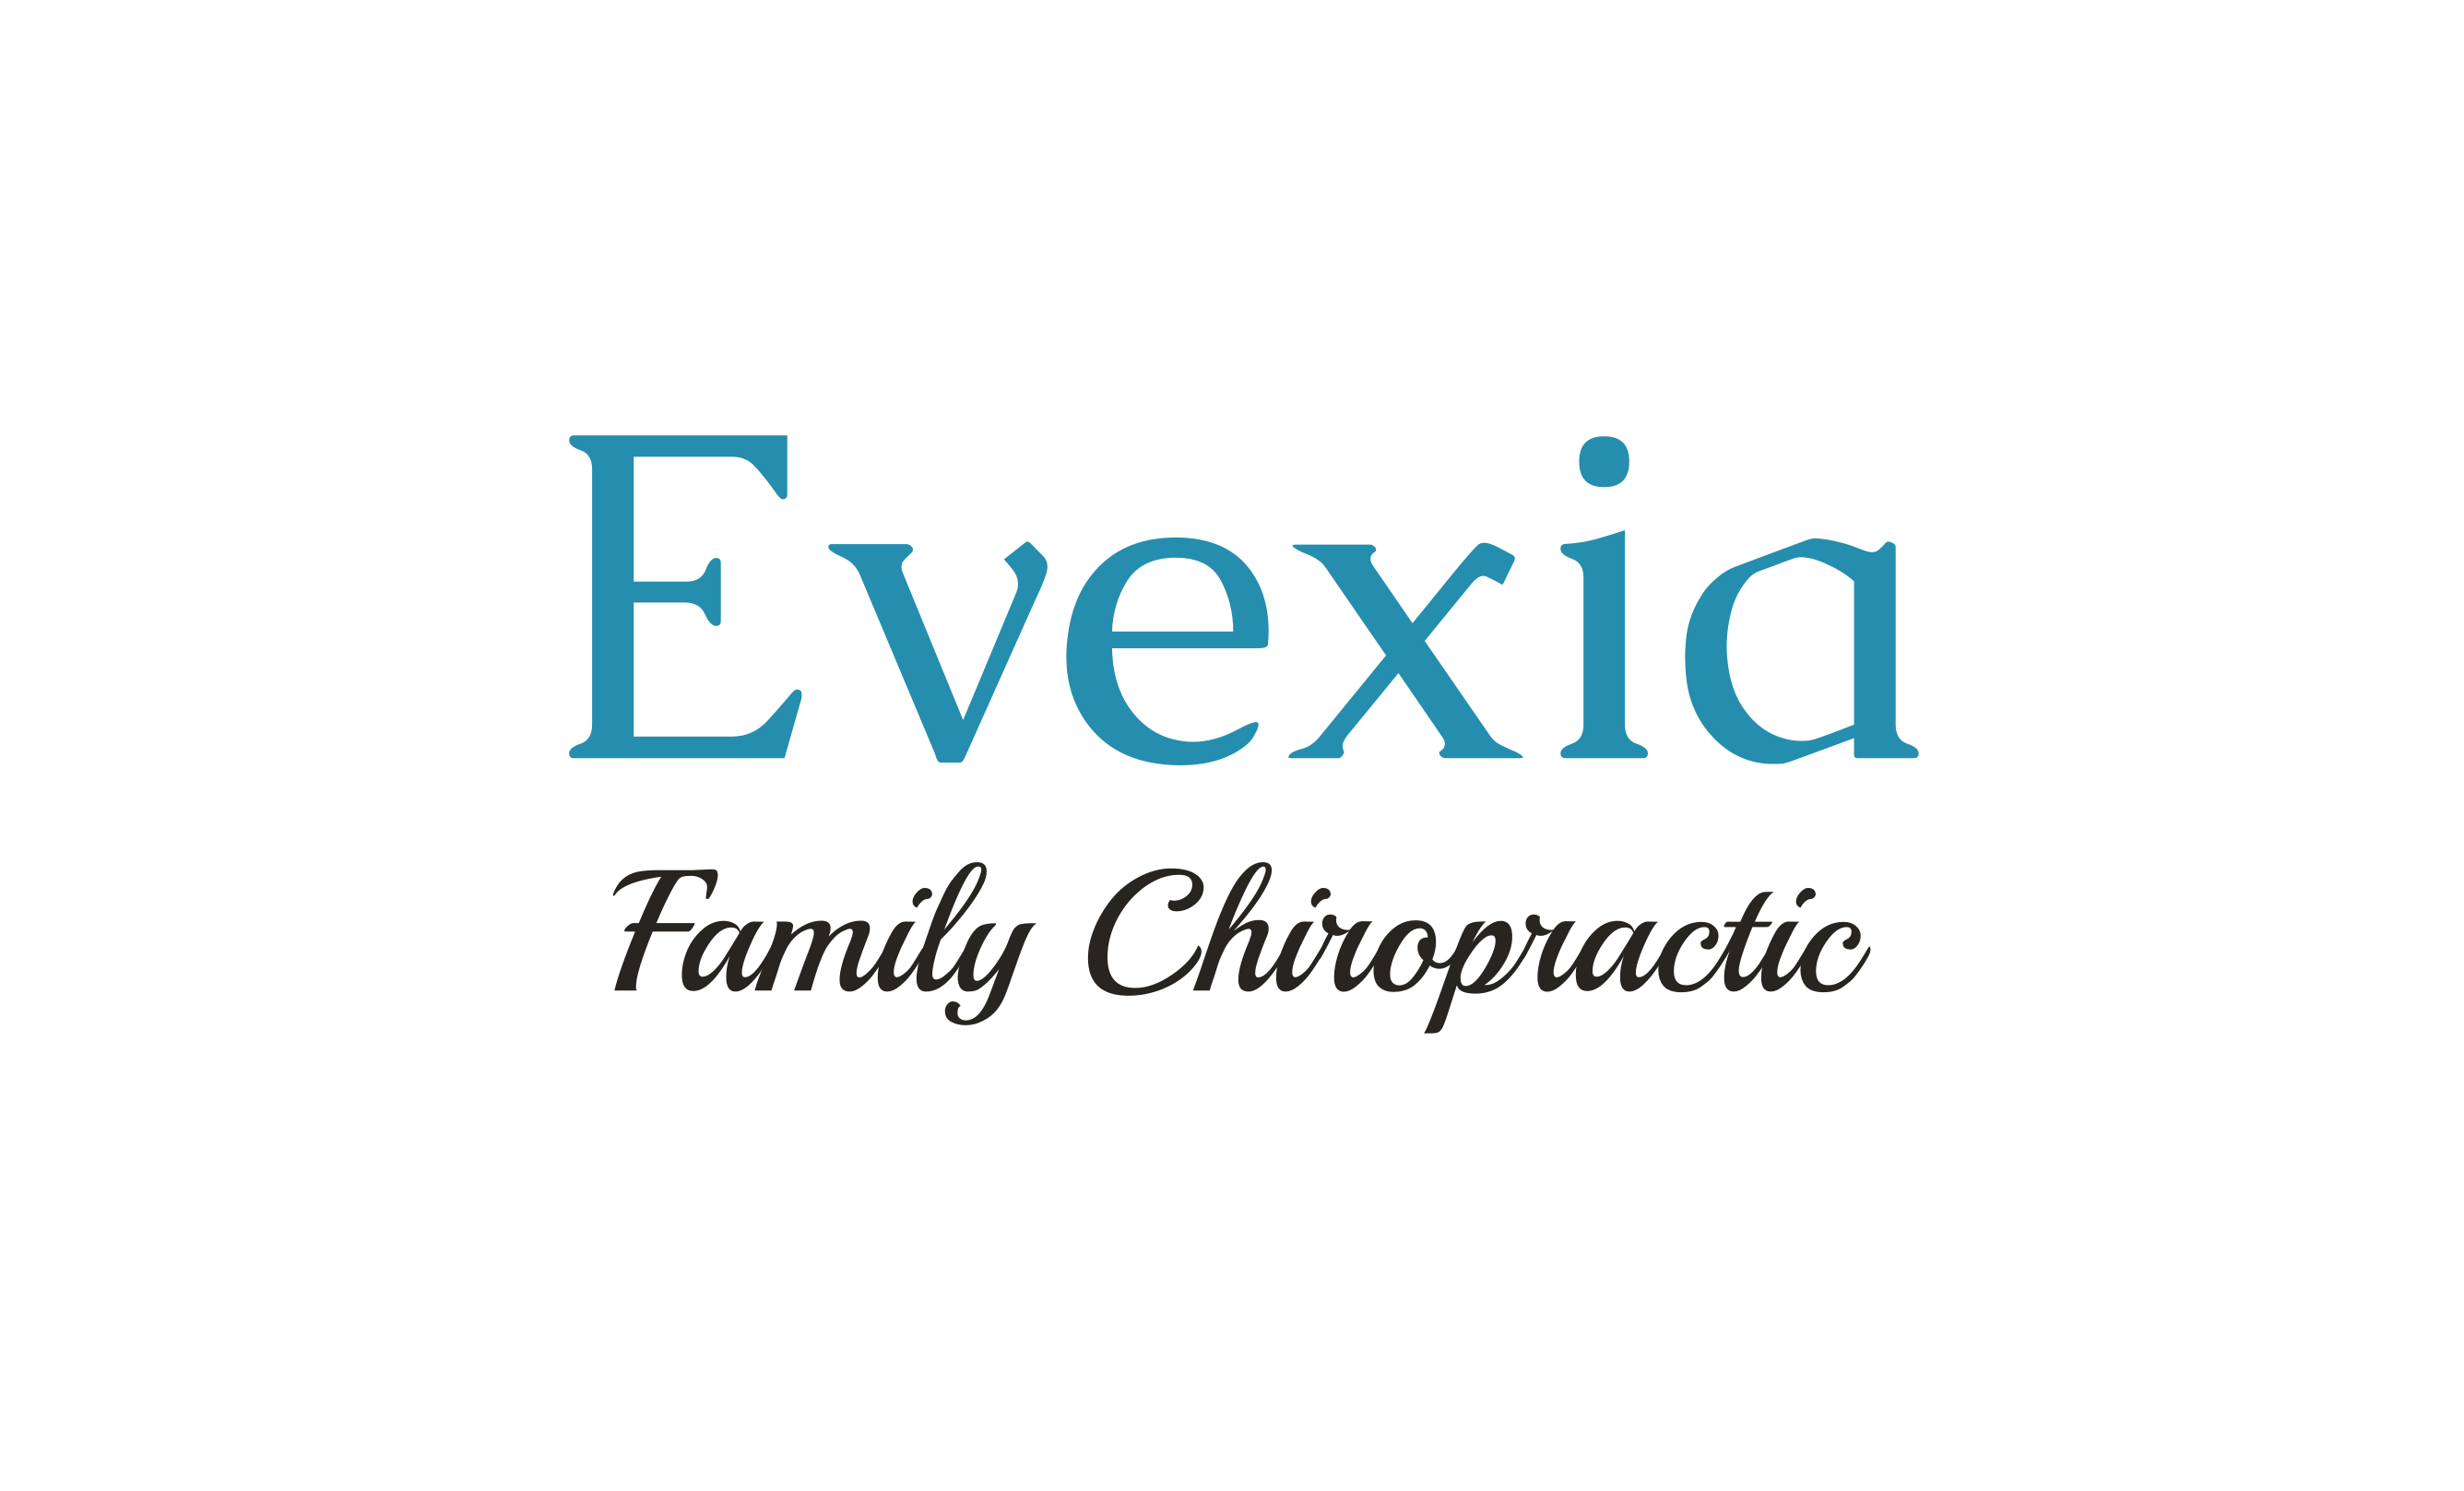 Evexia Family Chiropractic